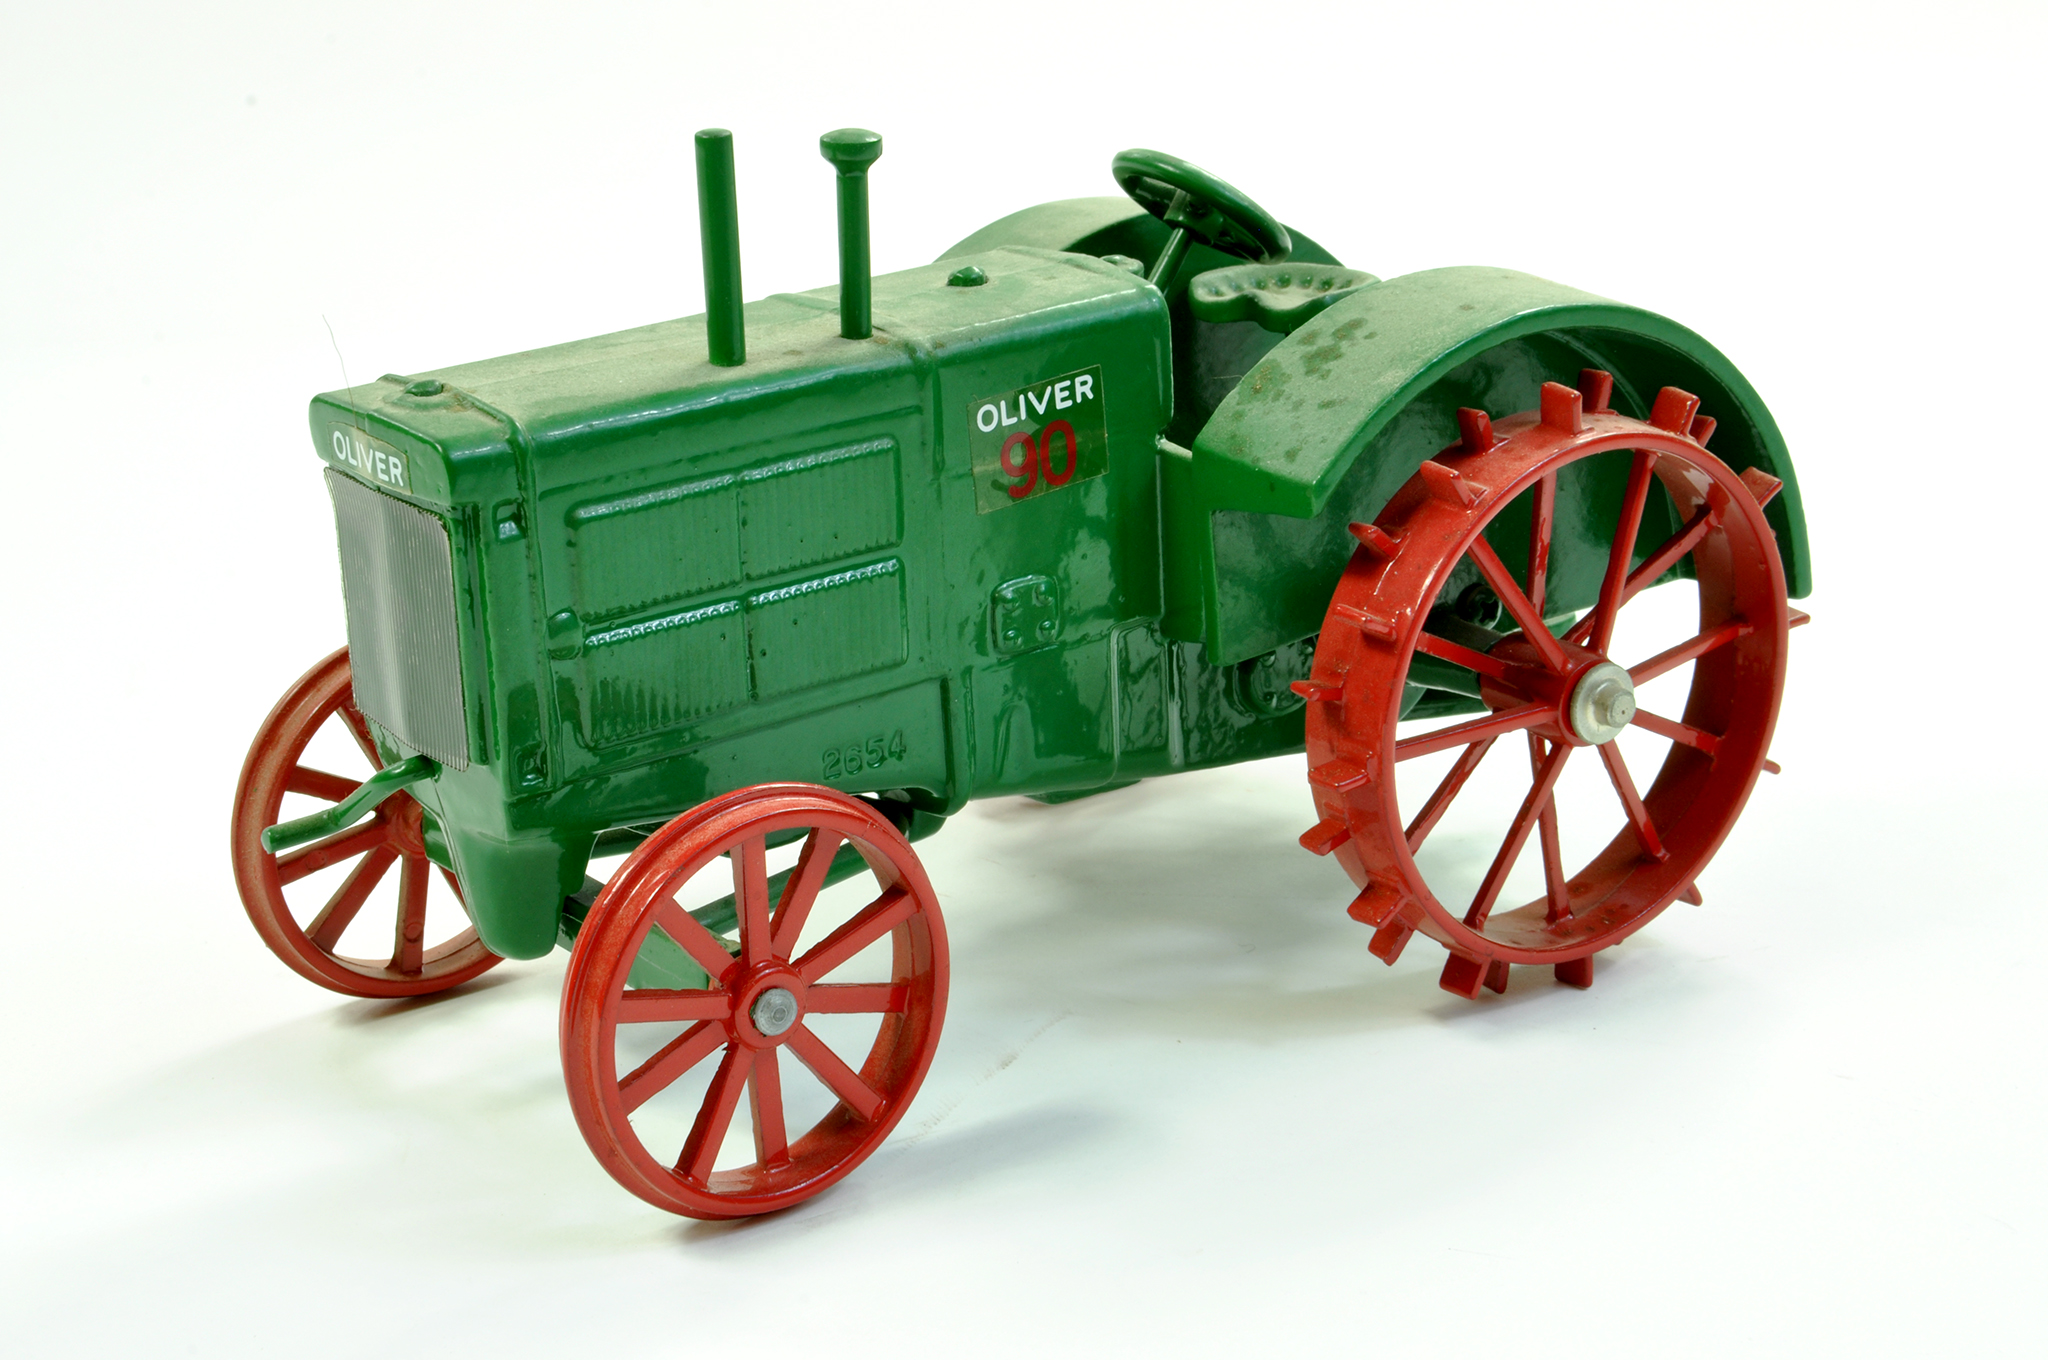 Lot 12 - Scale Models 1/16 diecast farm issue comprising Oliver 90 Vintage Tractor on metal wheels. A